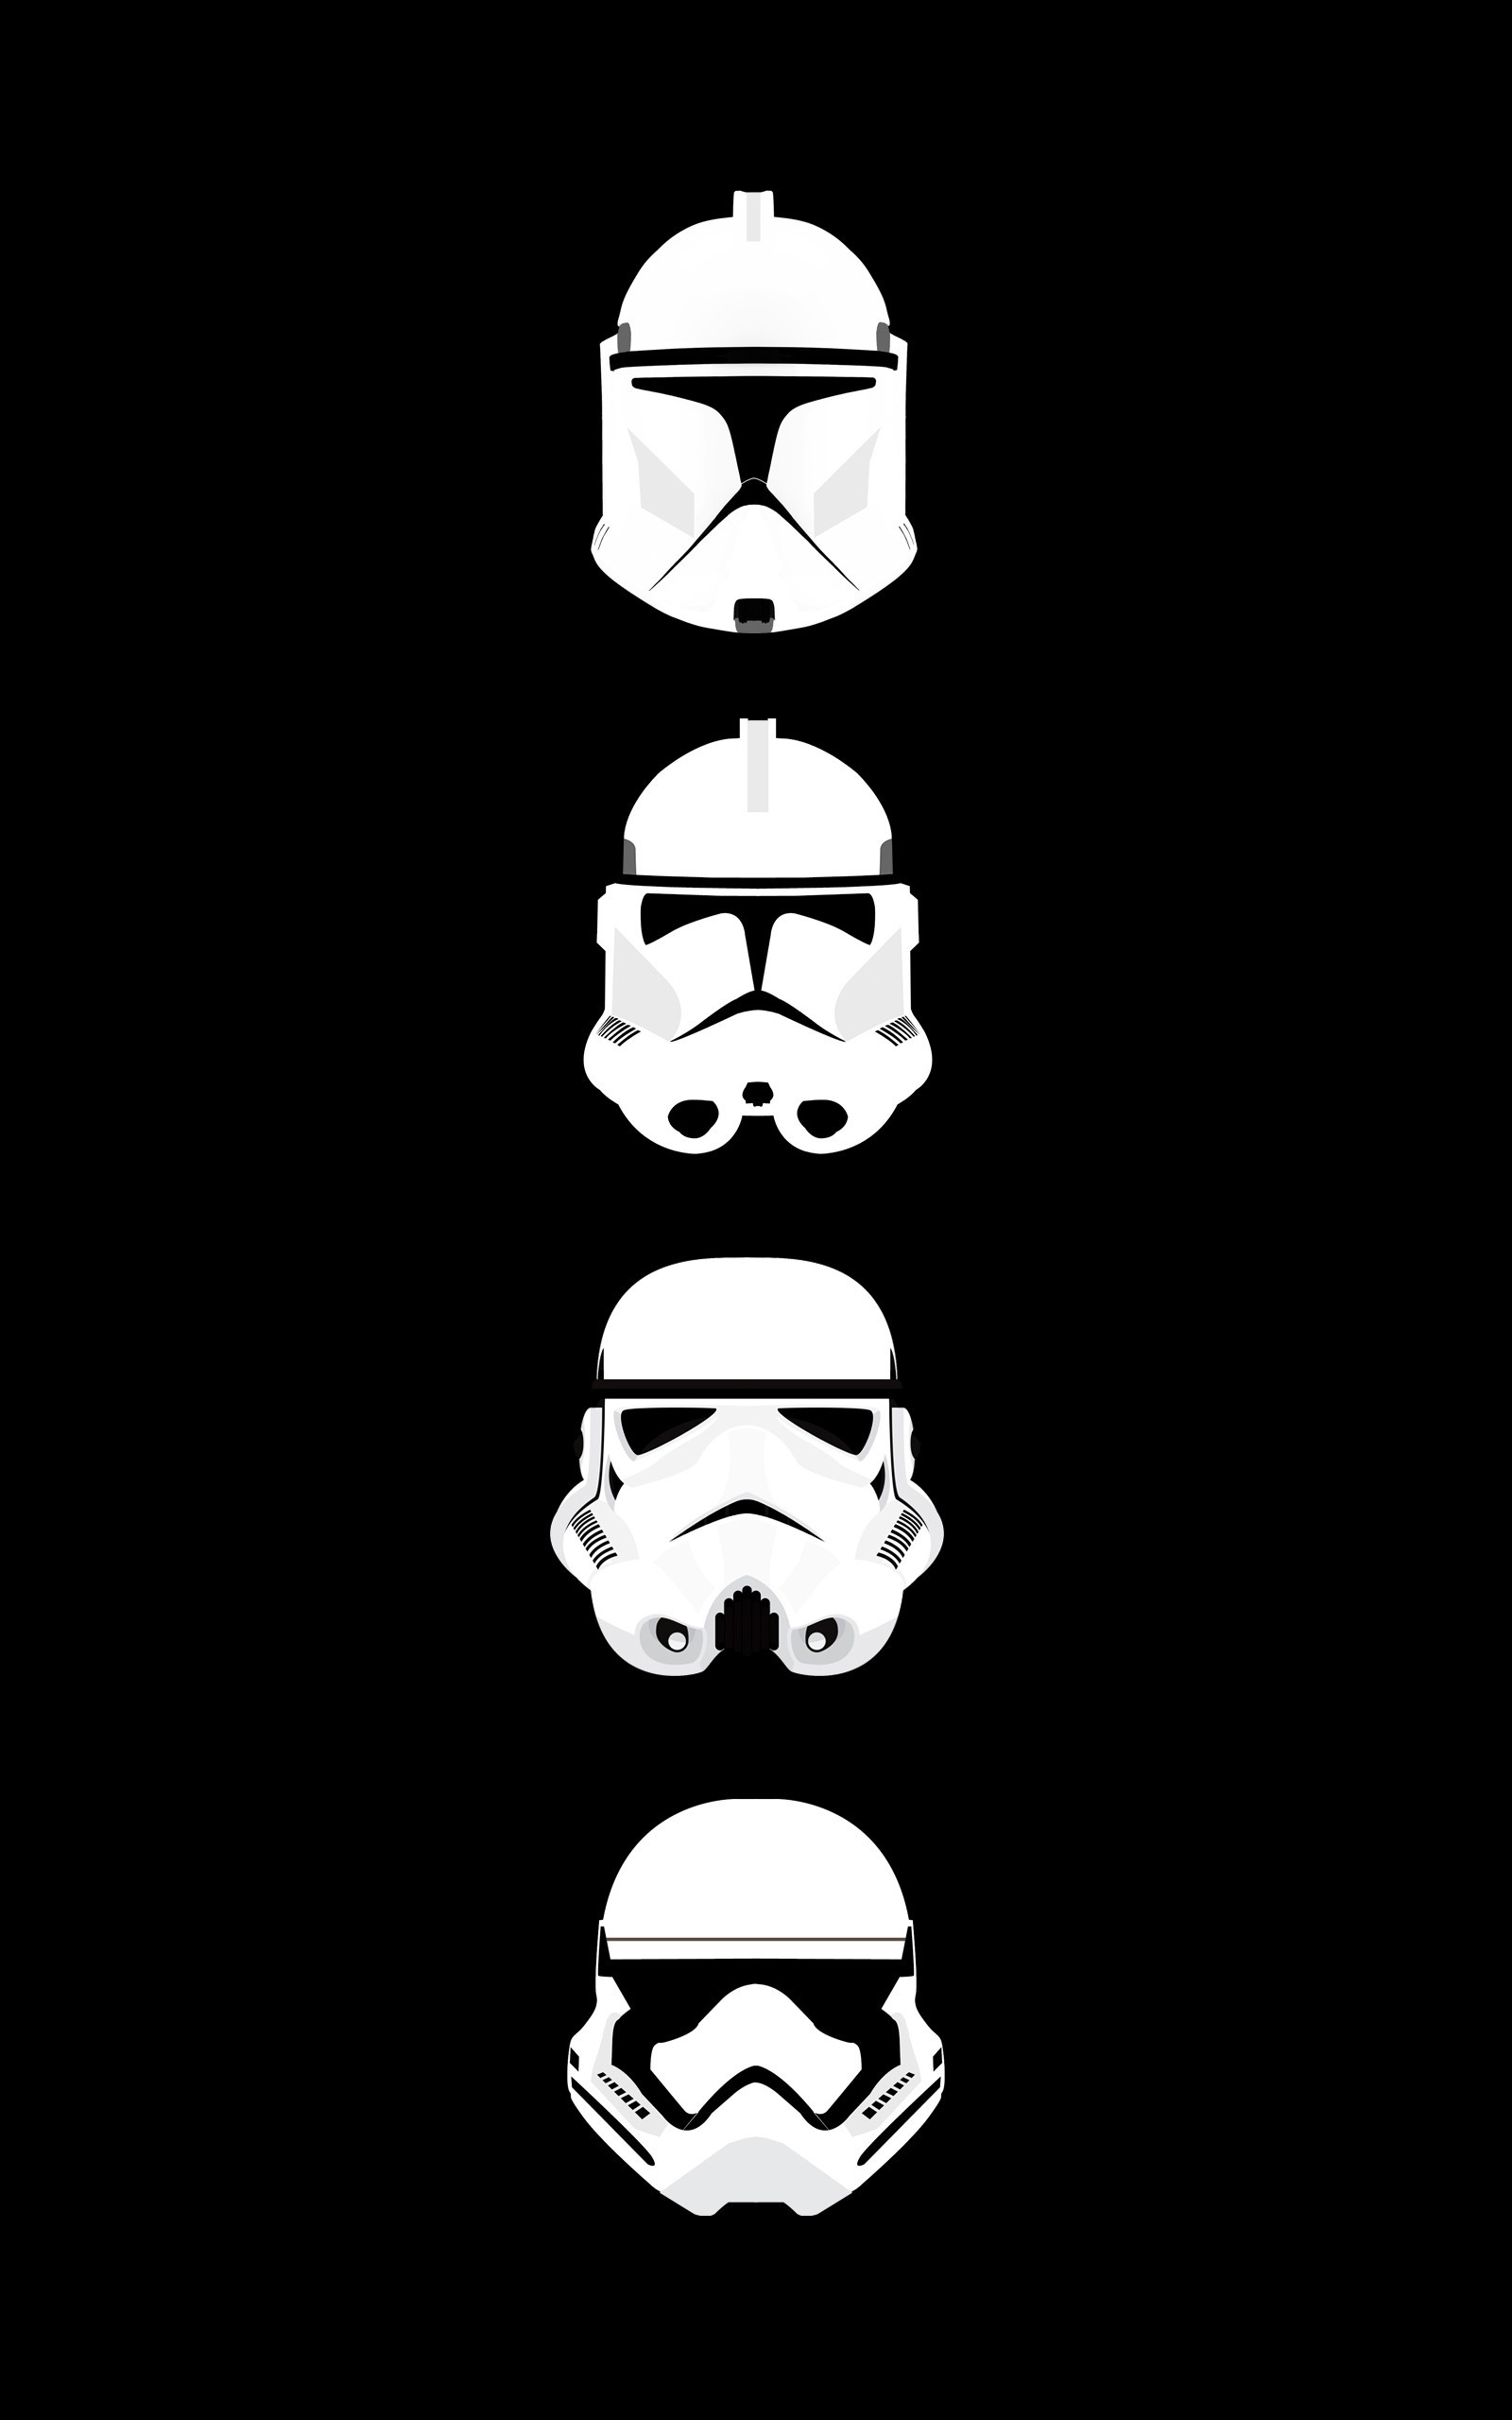 1600x2560 General Star Wars Clone Trooper Stormtrooper Helmet Minimalism Portrait Display